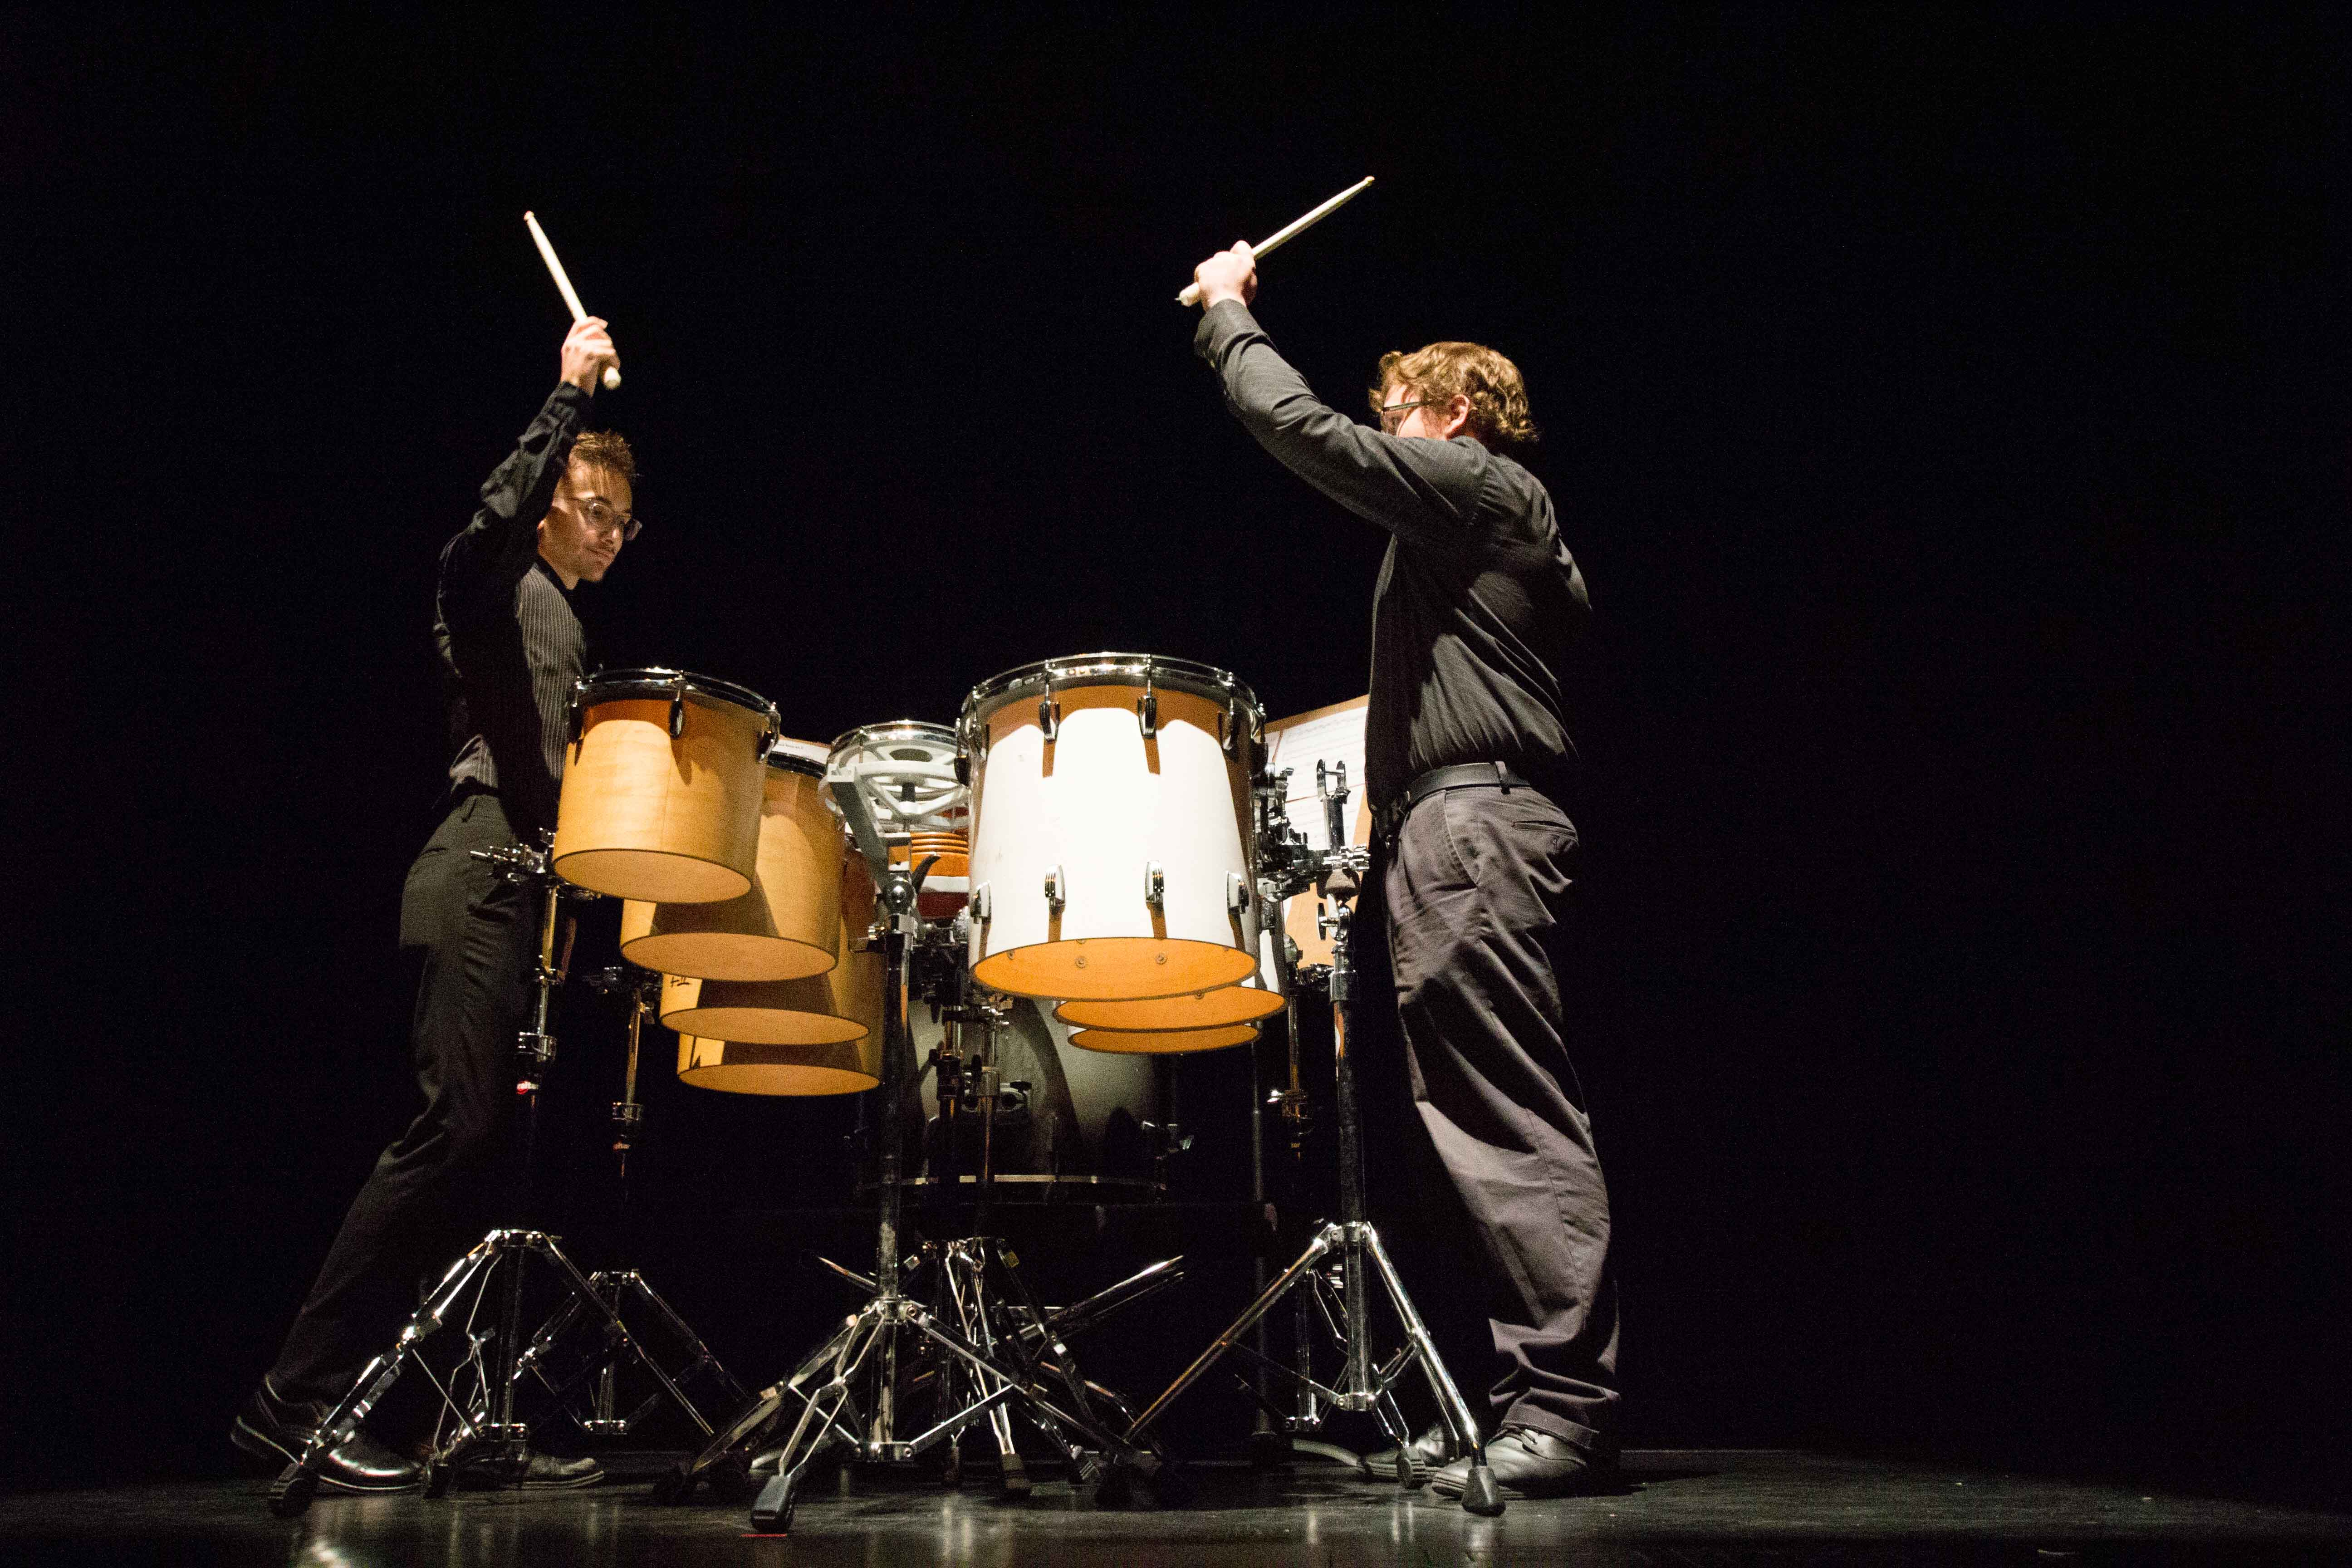 """Juniors Daniel Furry (left) and Spencer Weaver (right) play """"Eight on 3 and Nine on 2"""" composed by G. Clements and R. Marino on a multiple percussion setup on Sunday evening during the Impulse Percussion Group's concert. Furry and Weaver have been rehearsing the piece since the beginning of the summer."""